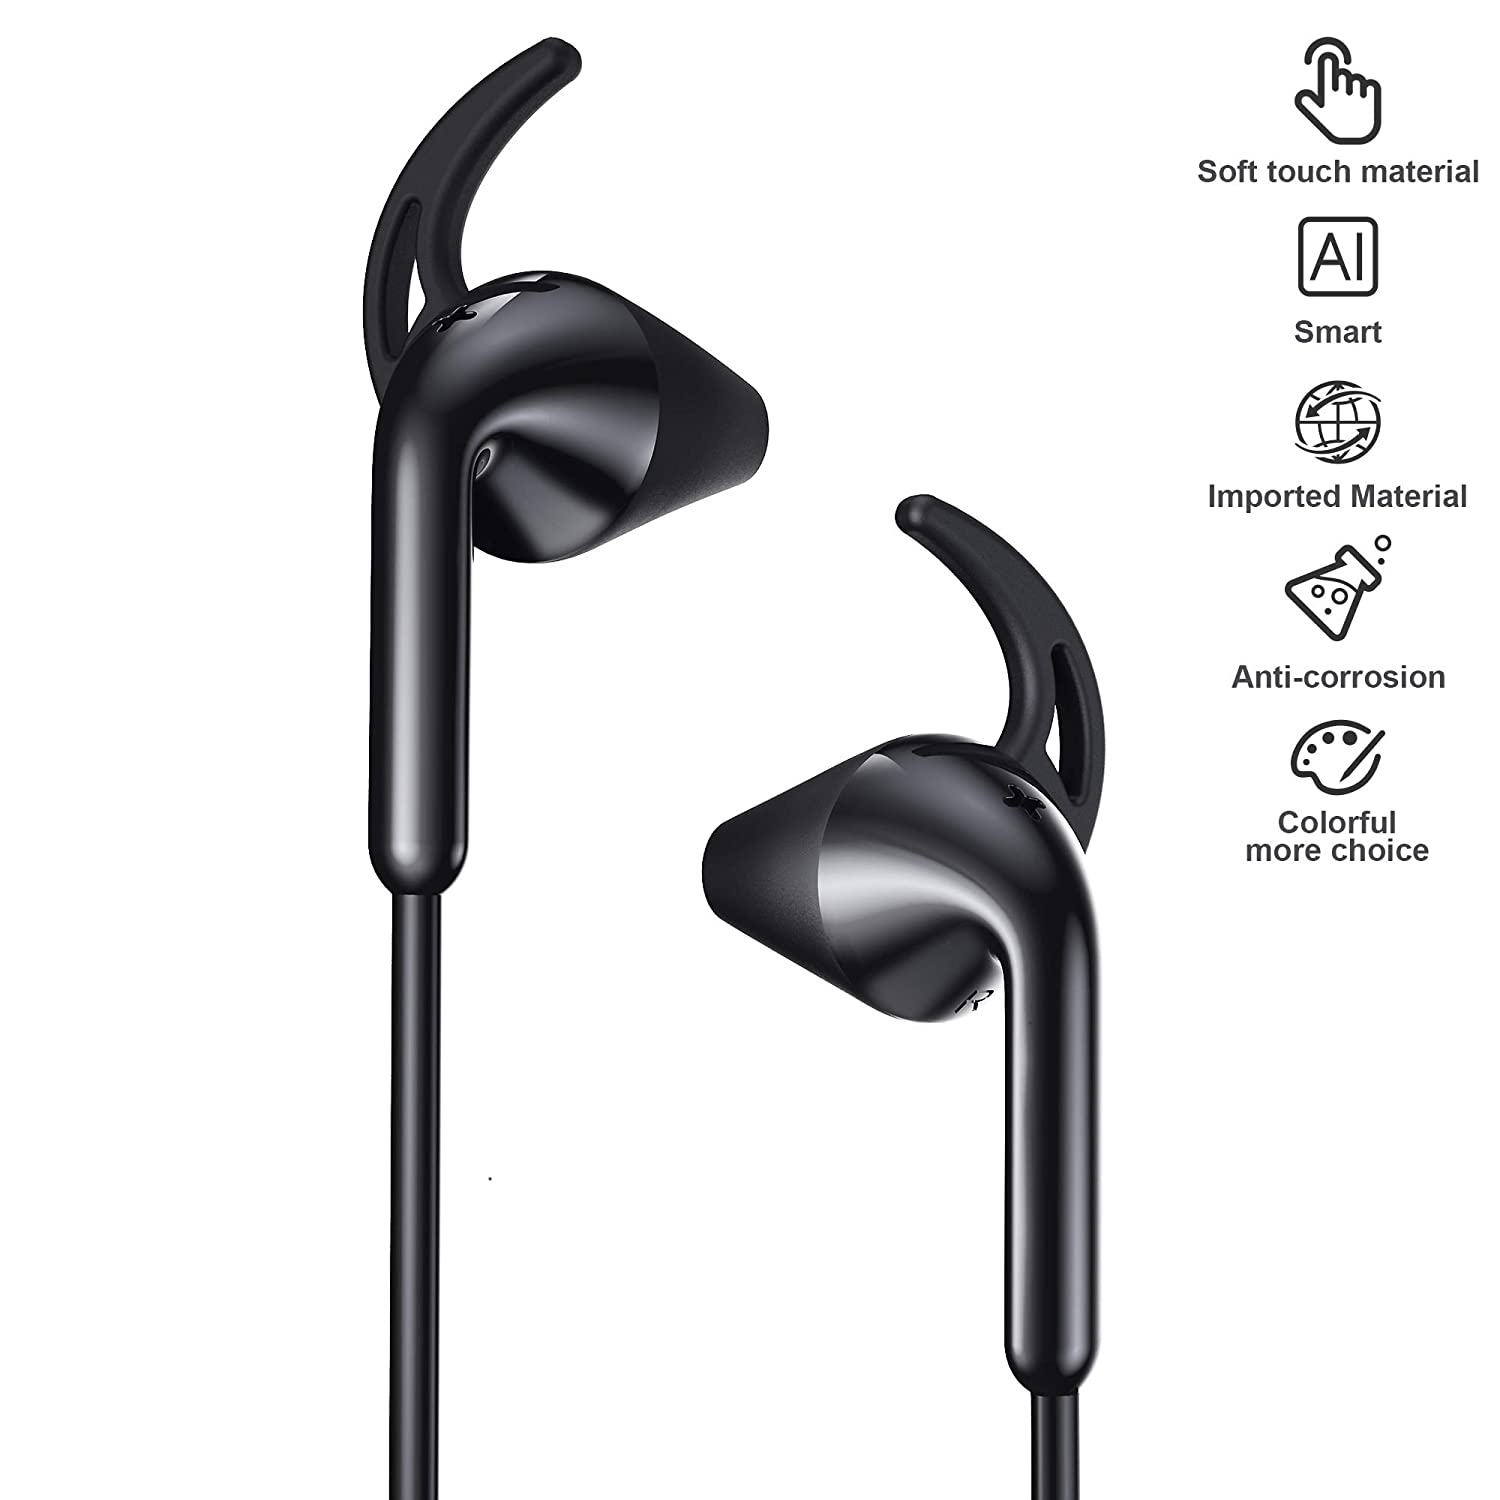 Wireless Headphones, Bluetooth 5.0 Wireless Earbuds with mic, Linpa World 10 Hours Playtime, IPX5 Waterproof Sports Earphones for Running Exercise Gym Workout